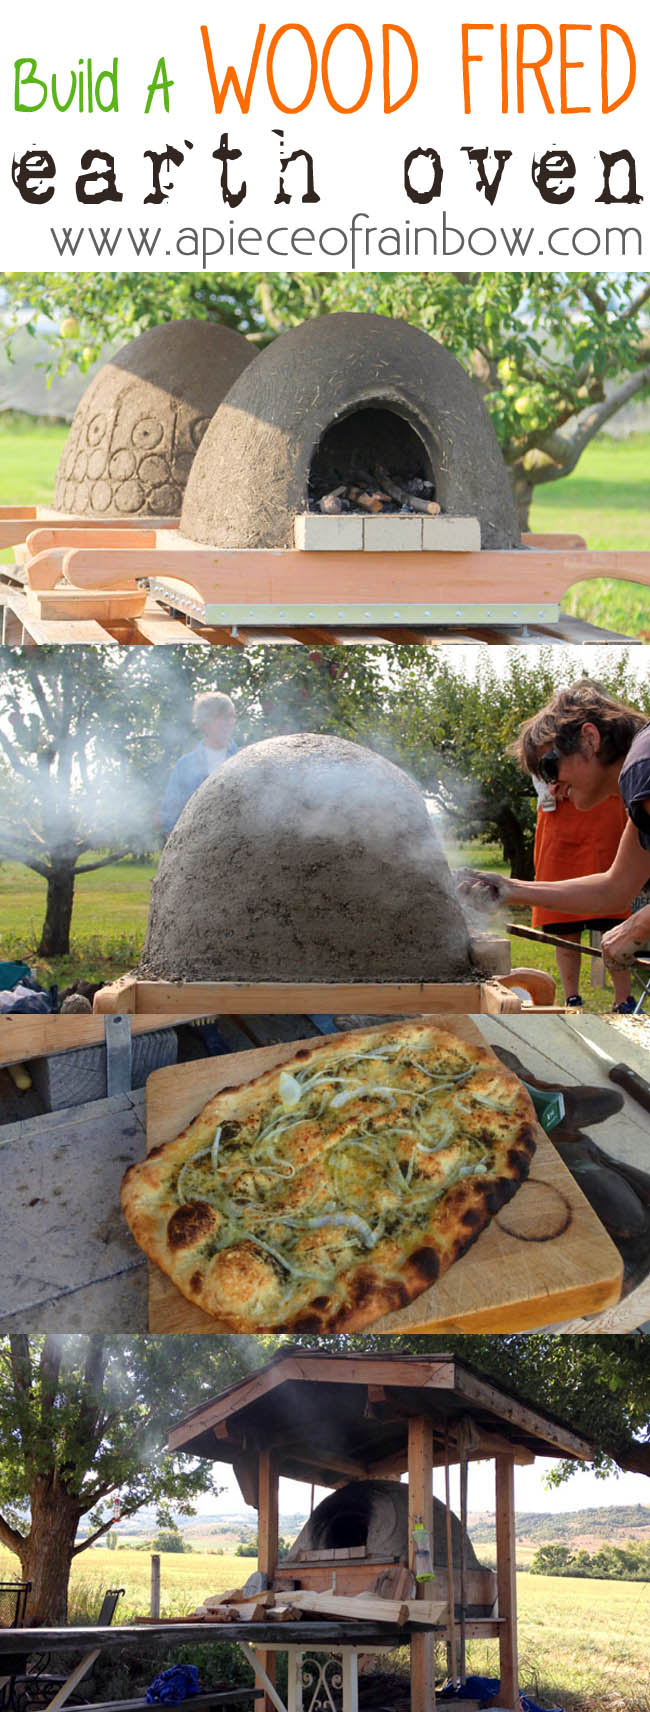 Comment construire facilement son propre four pizza en for Construire un four a pizza exterieur